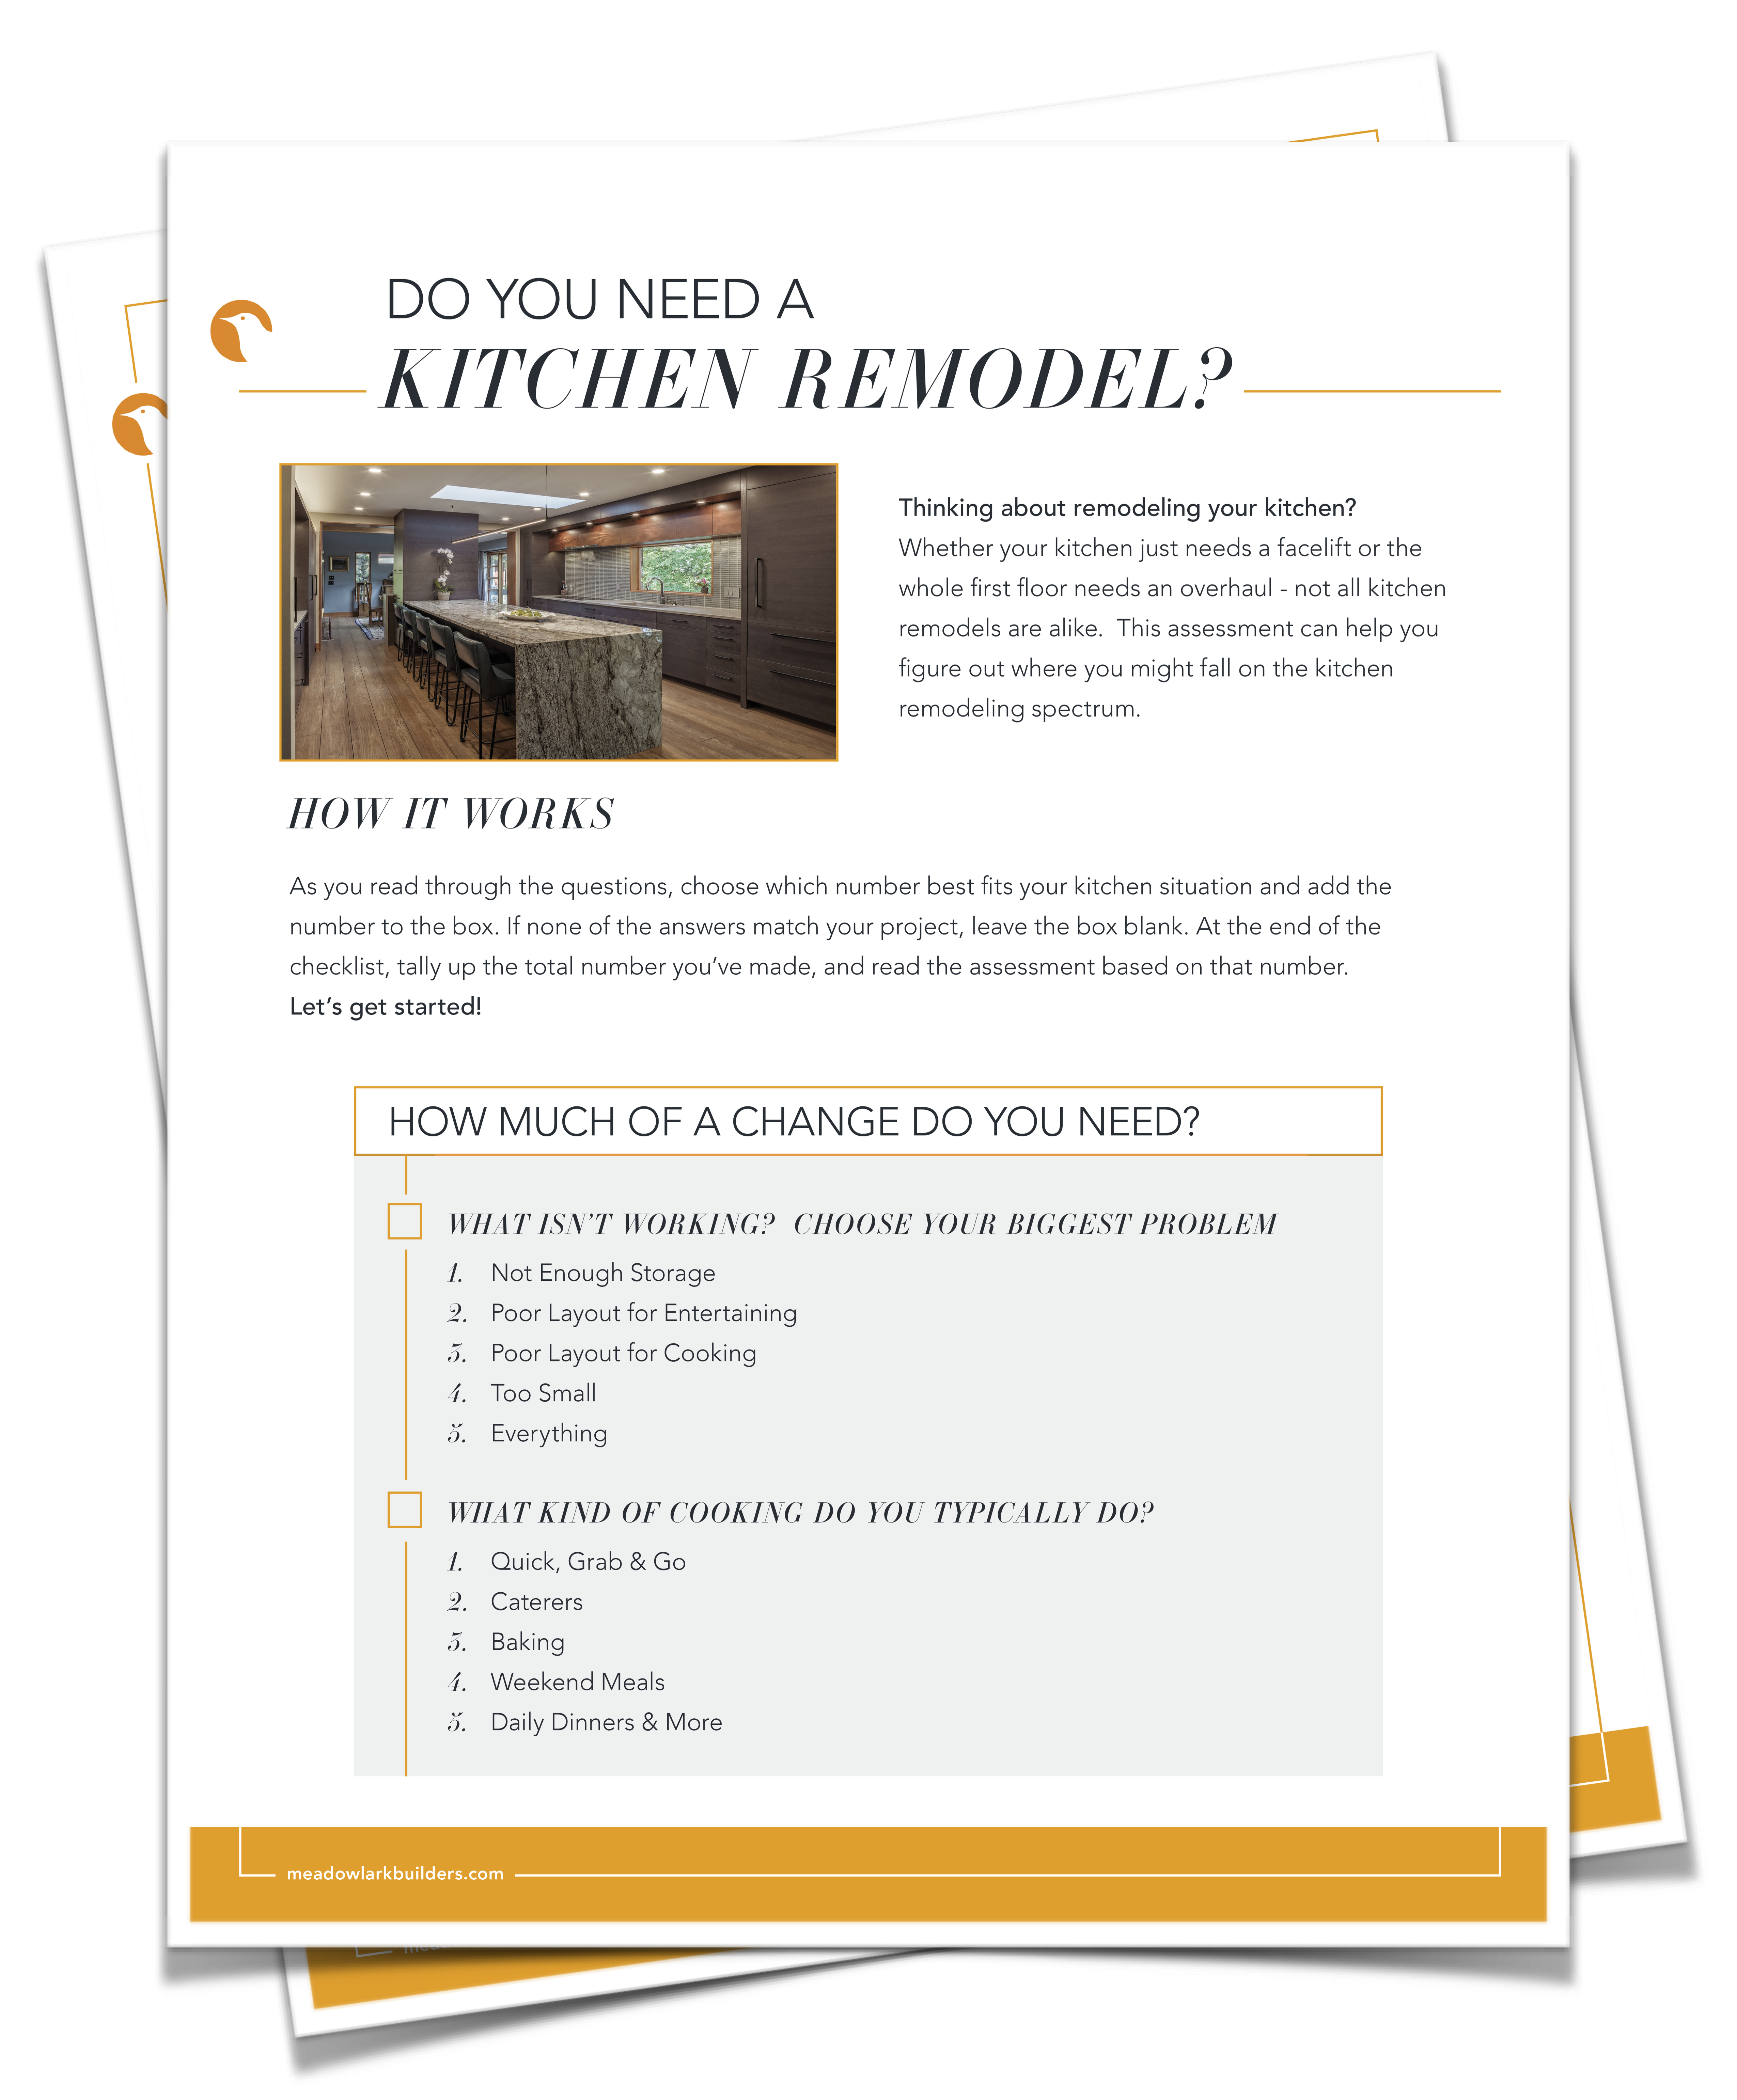 KITCHEN REMODEL CO GRAPHIC